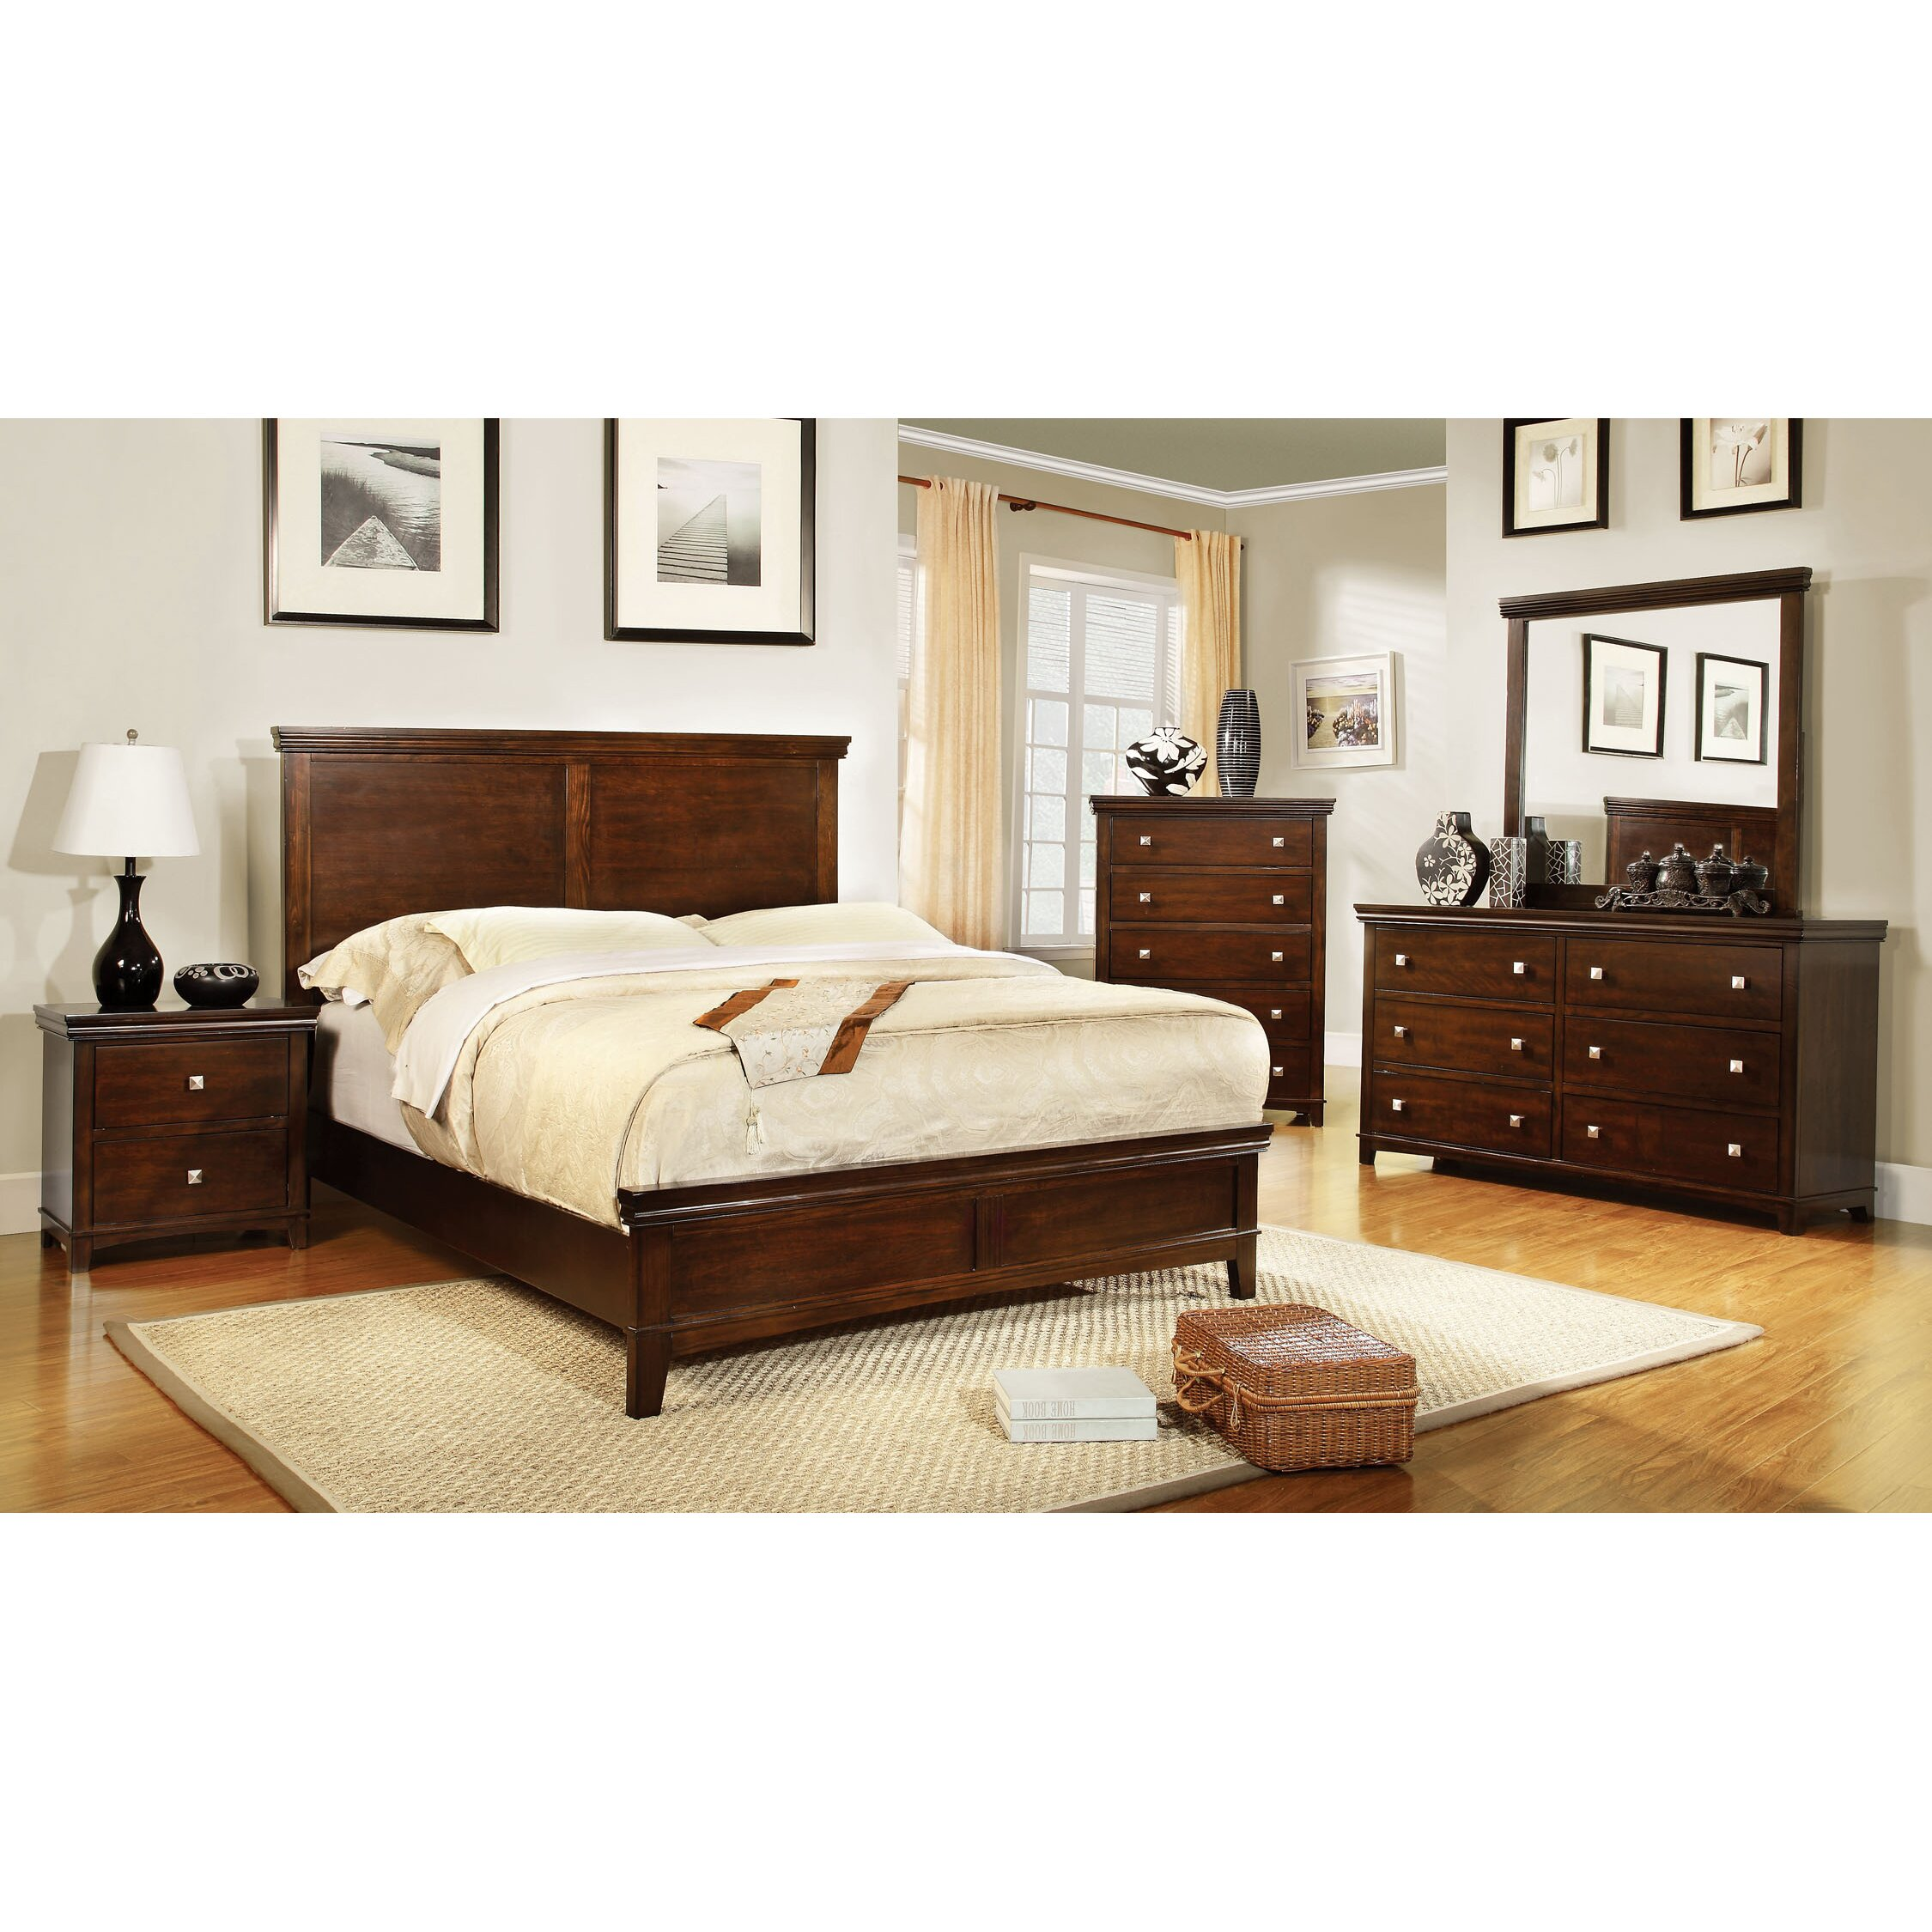 Laguna Bedroom Set - Home Design